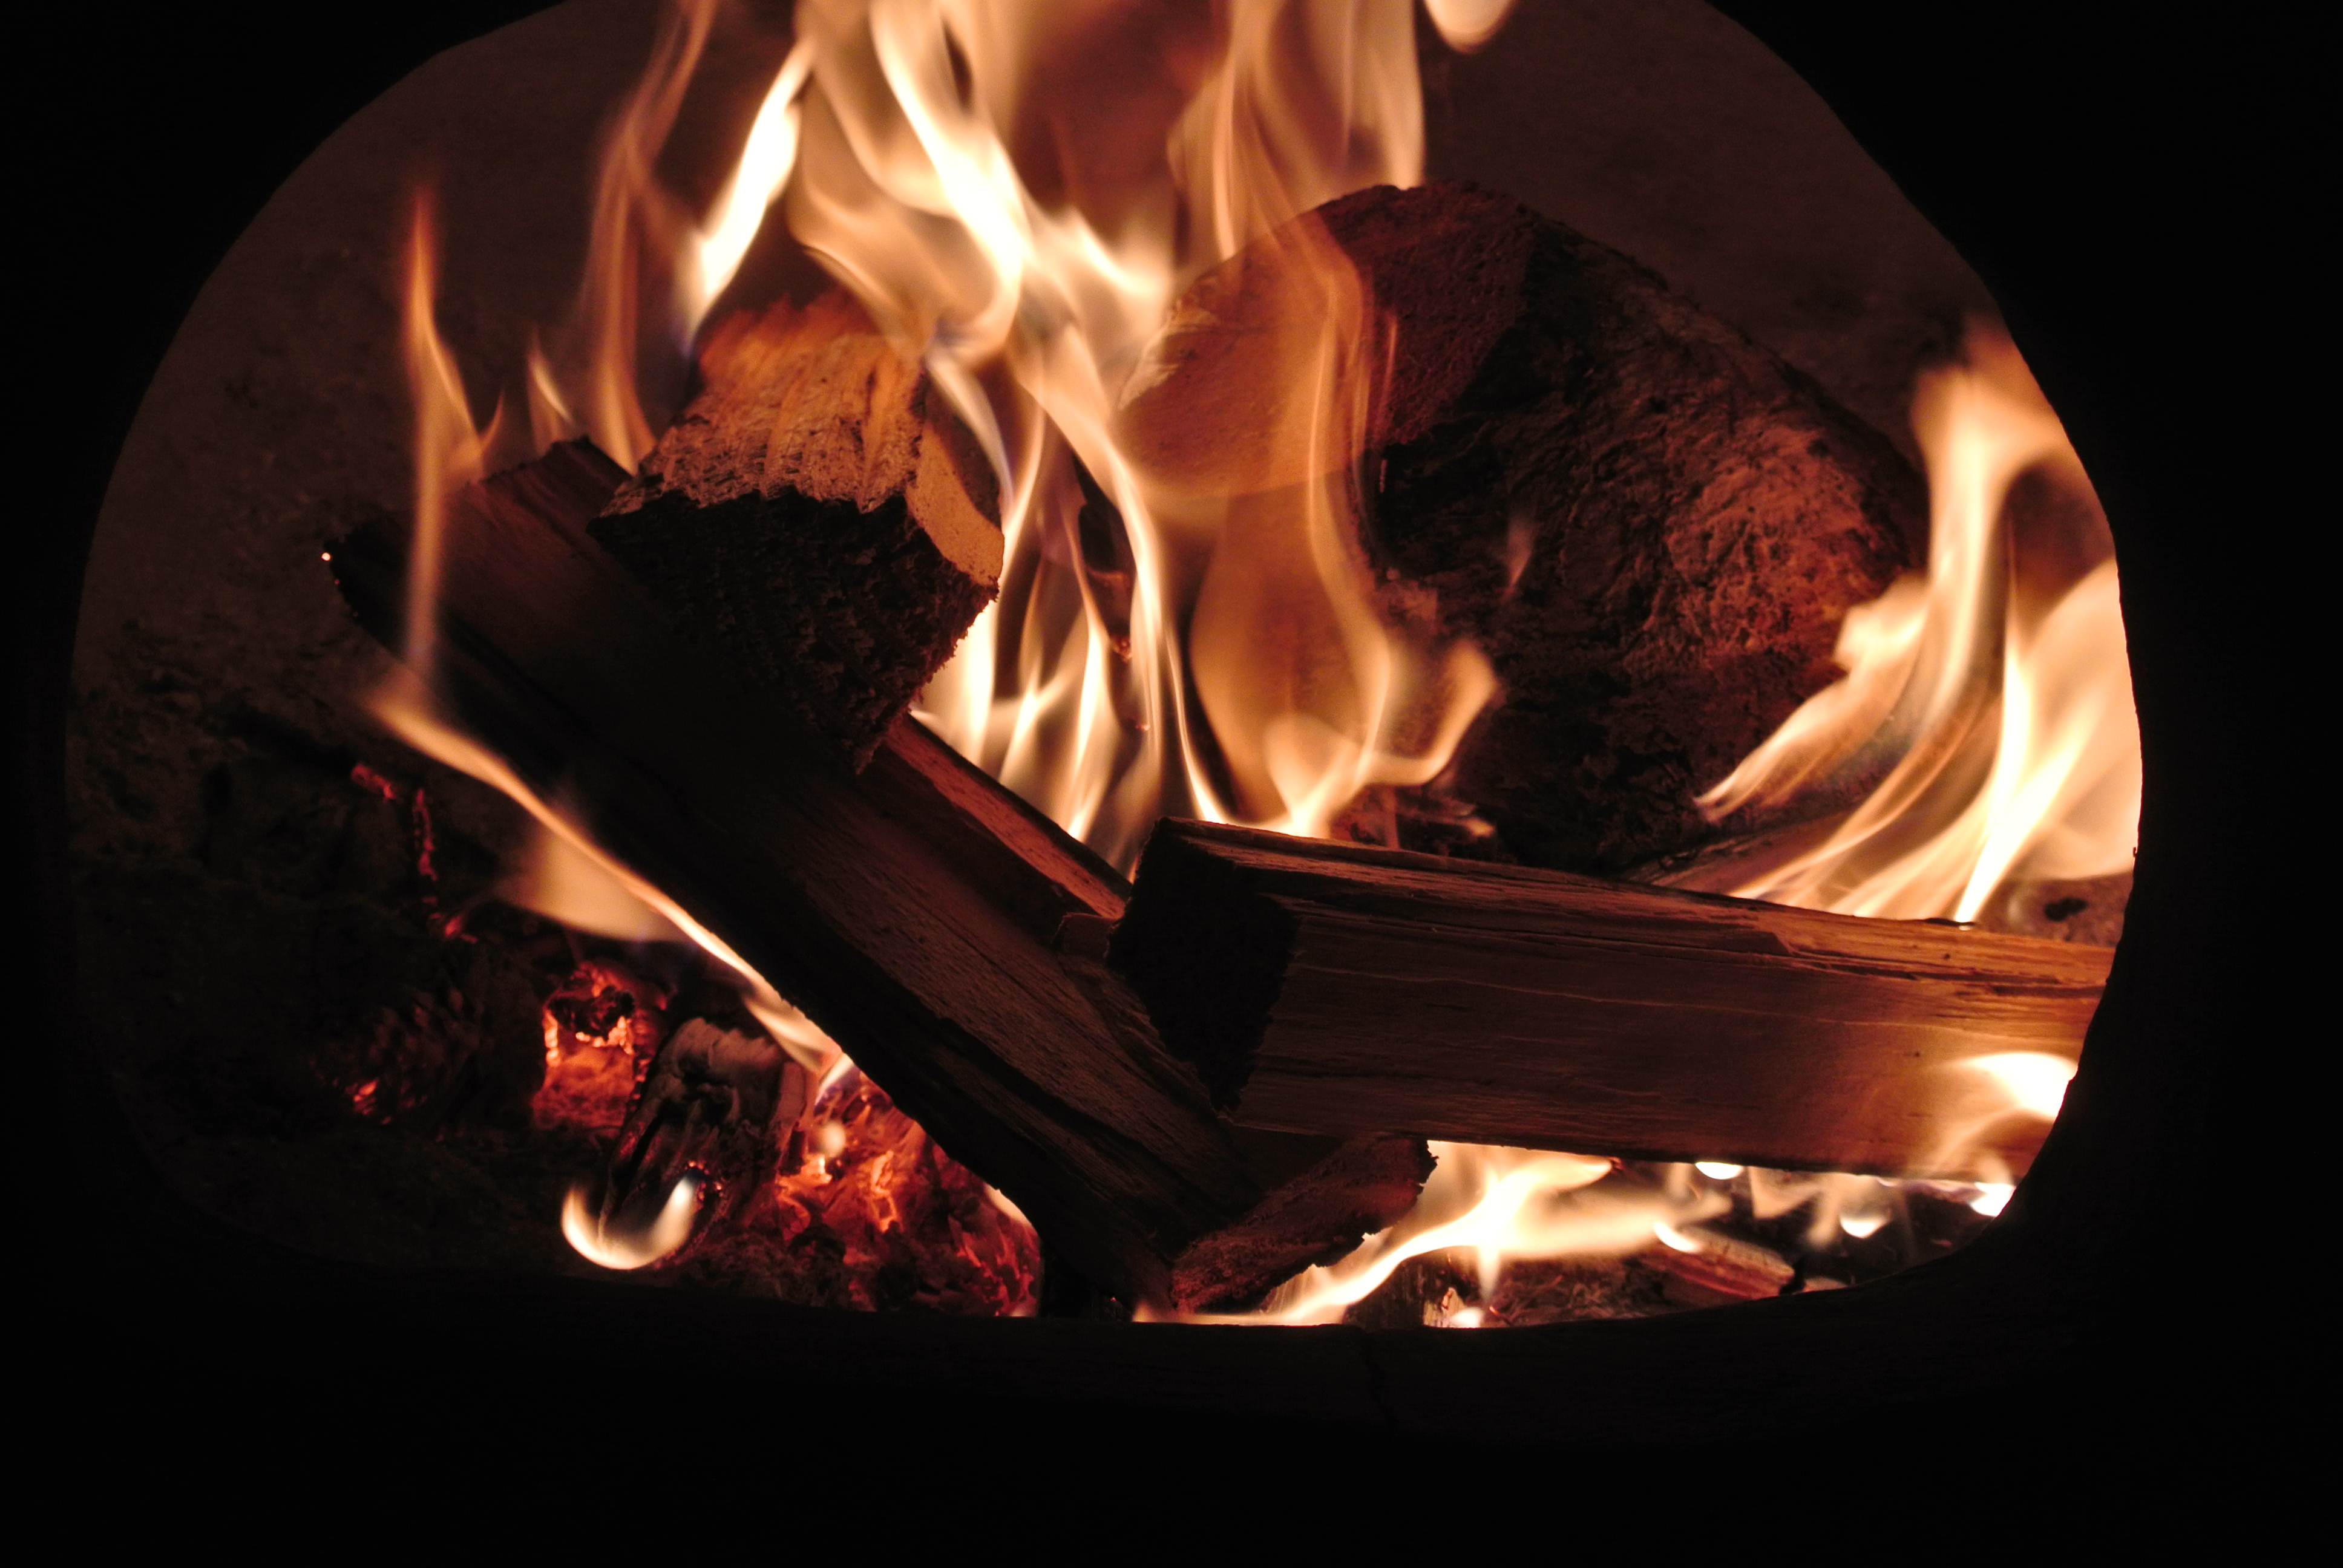 The longer you sit the more the fire draws you into the swirling and dancing flames, Photos can never quite capture the glow of the embers.....I love the warmth radiating out of the mouth.